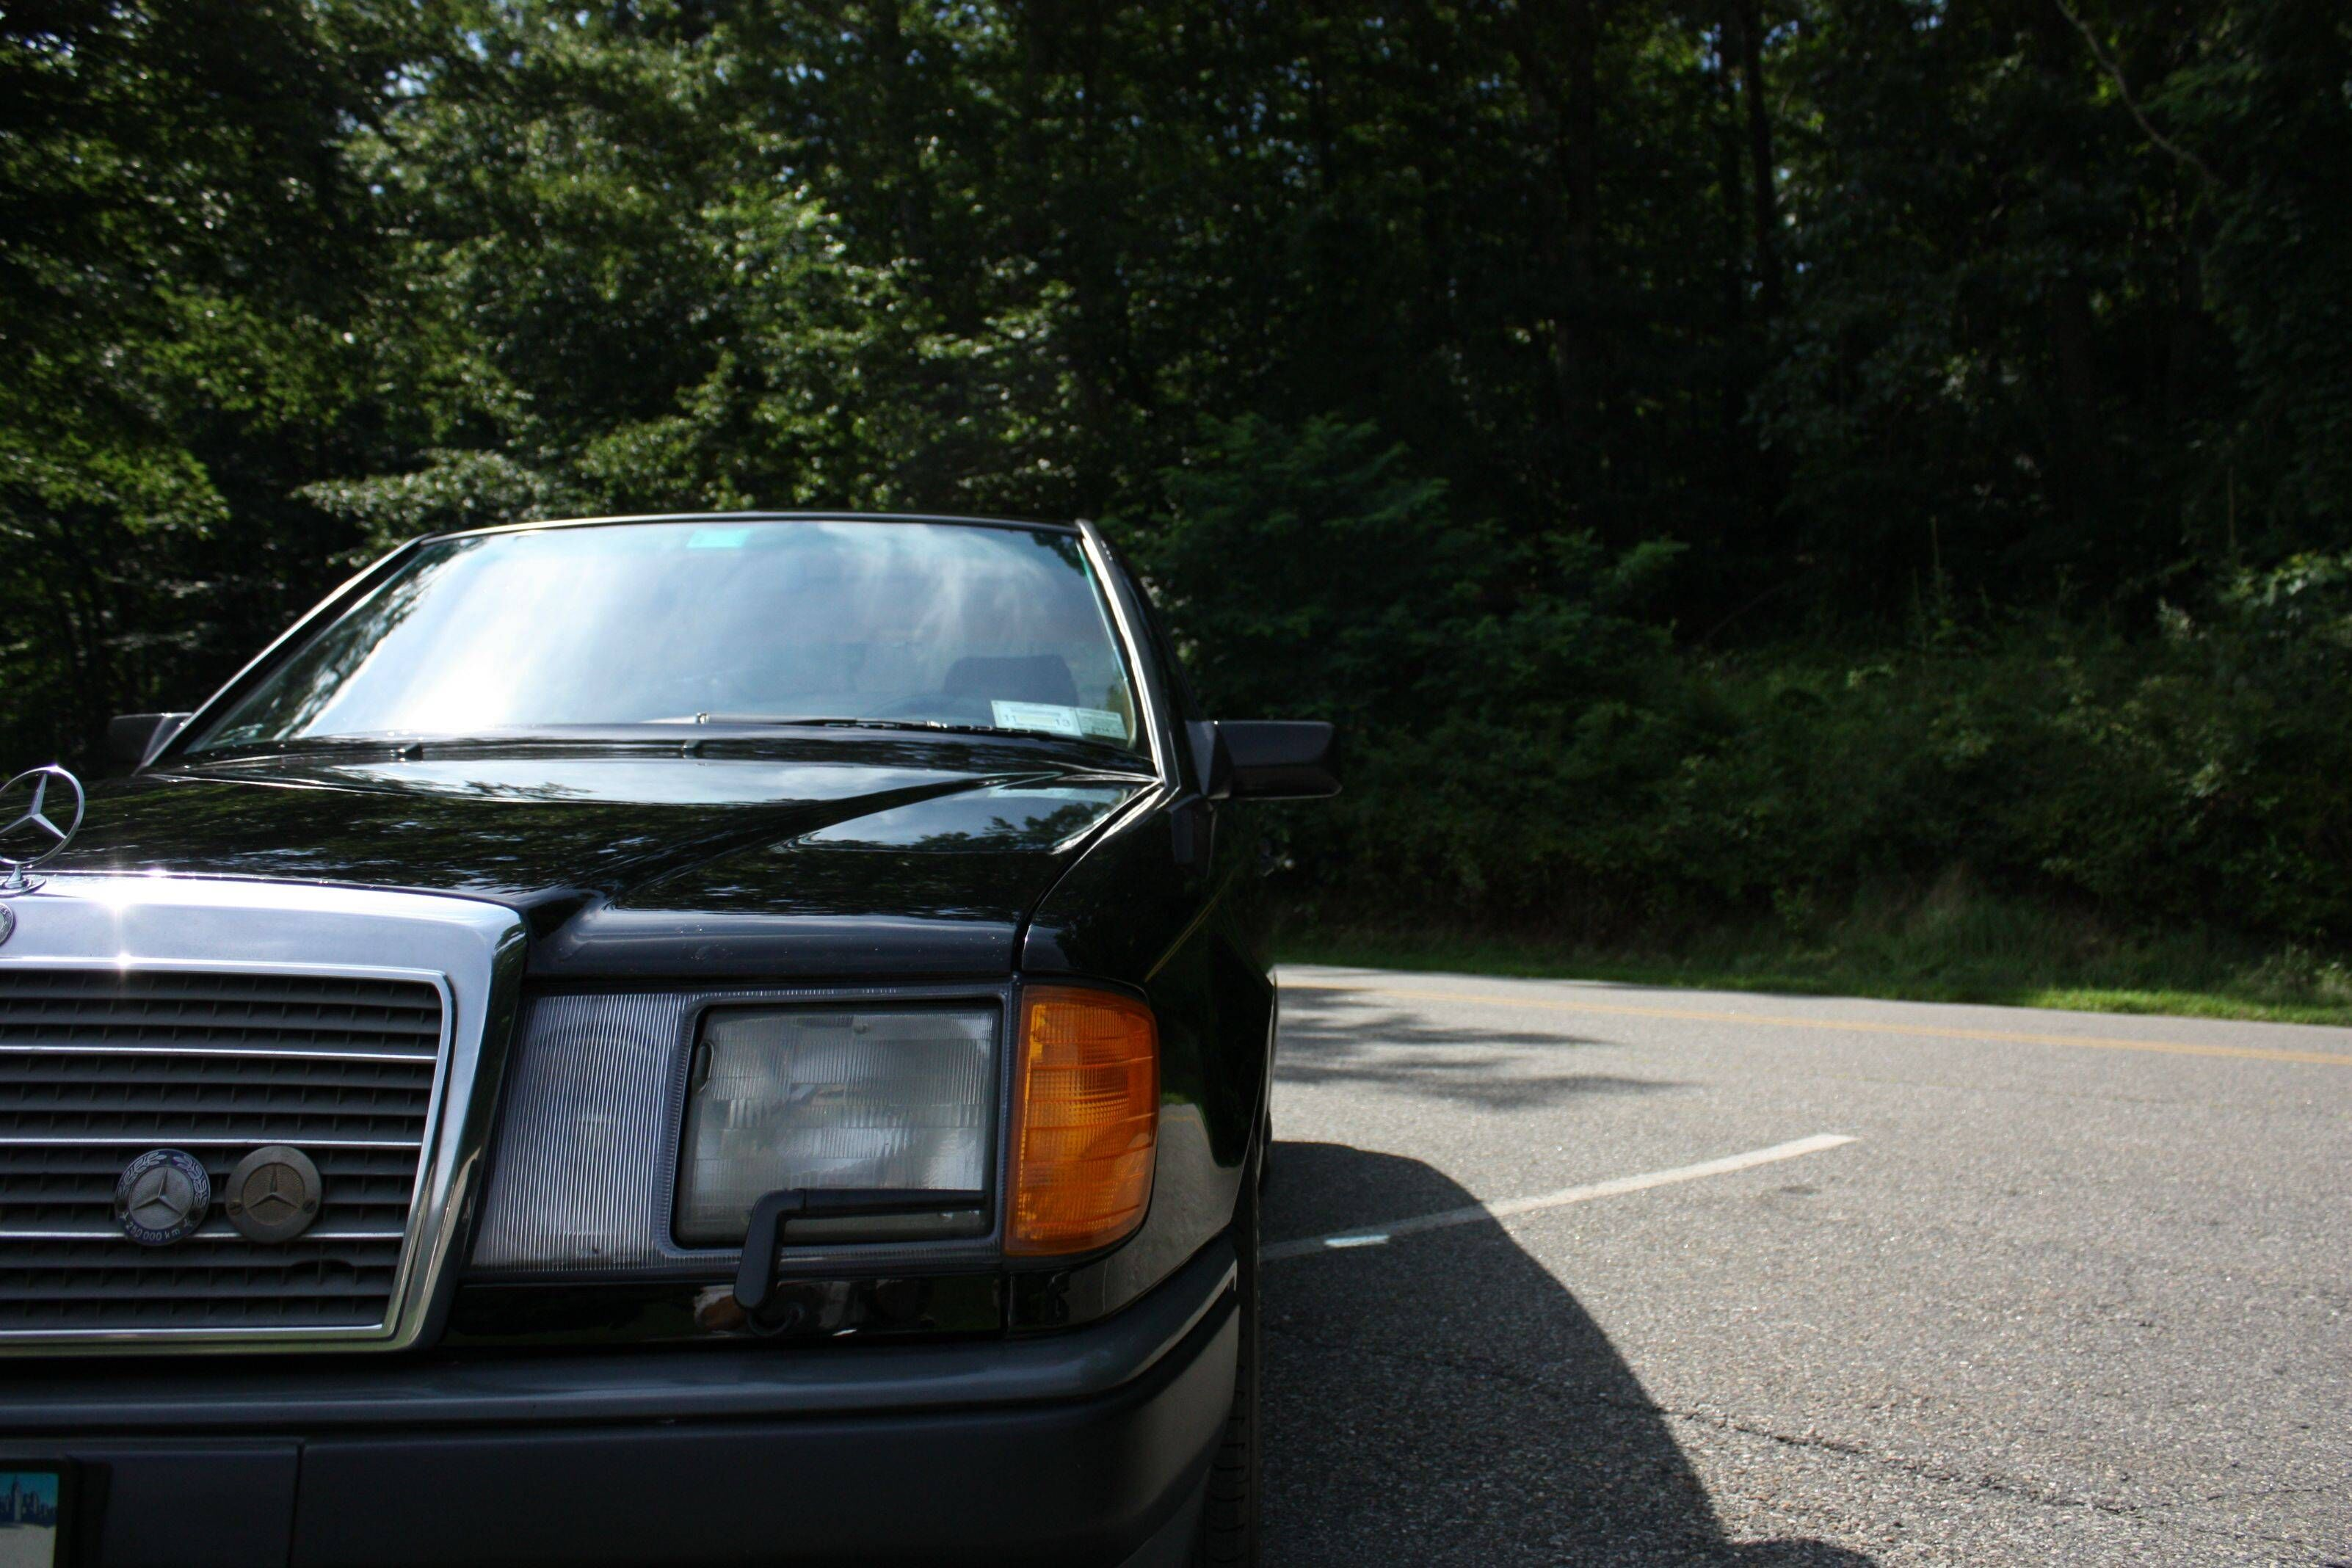 1989 Mercedes-Benz 300E: Owner Has Over 800,000 Miles